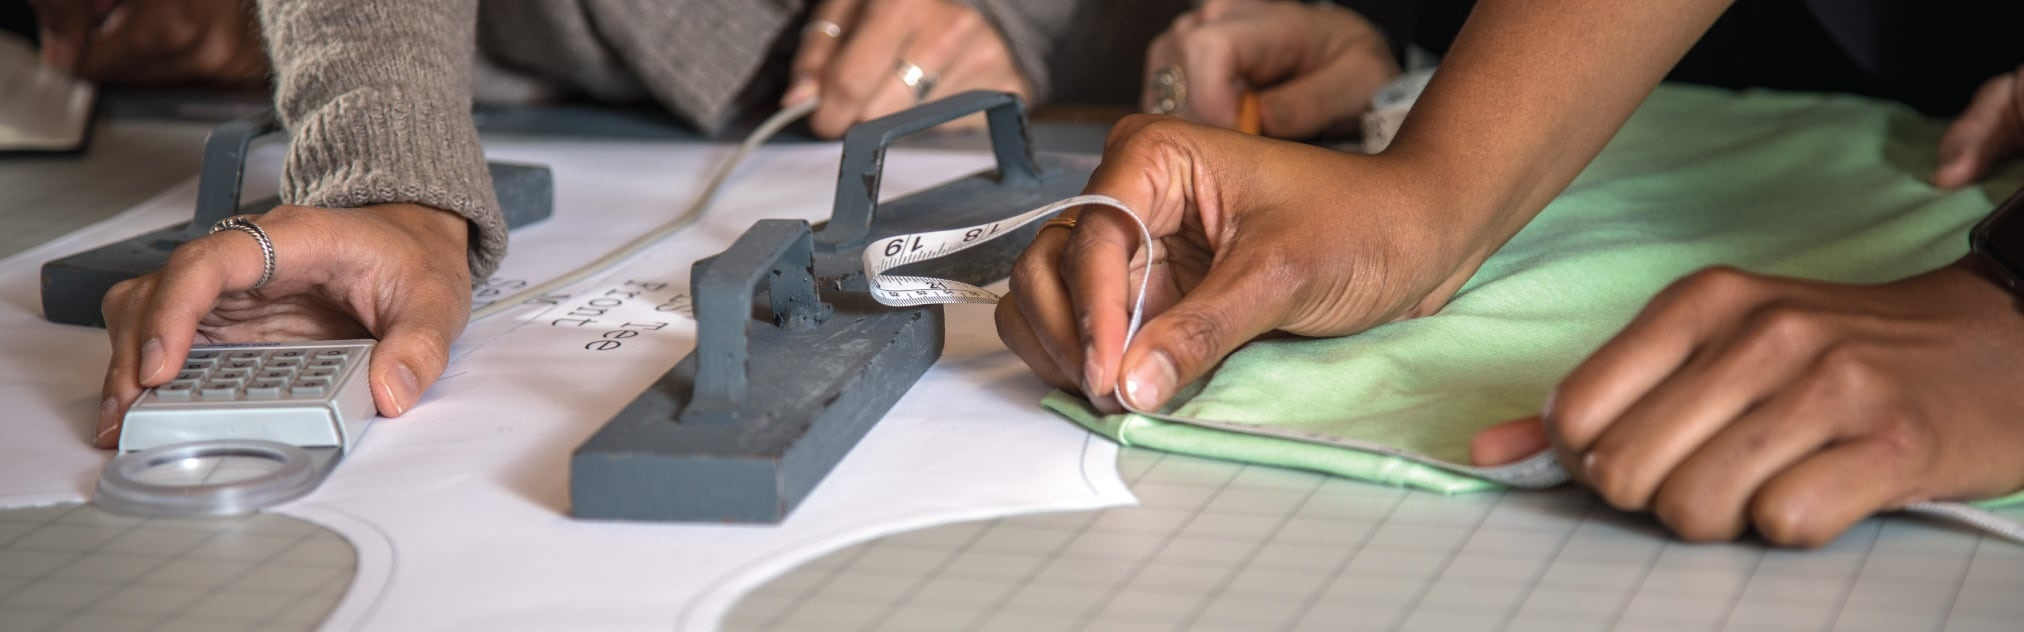 Close up photo of students working on measuring a sports product